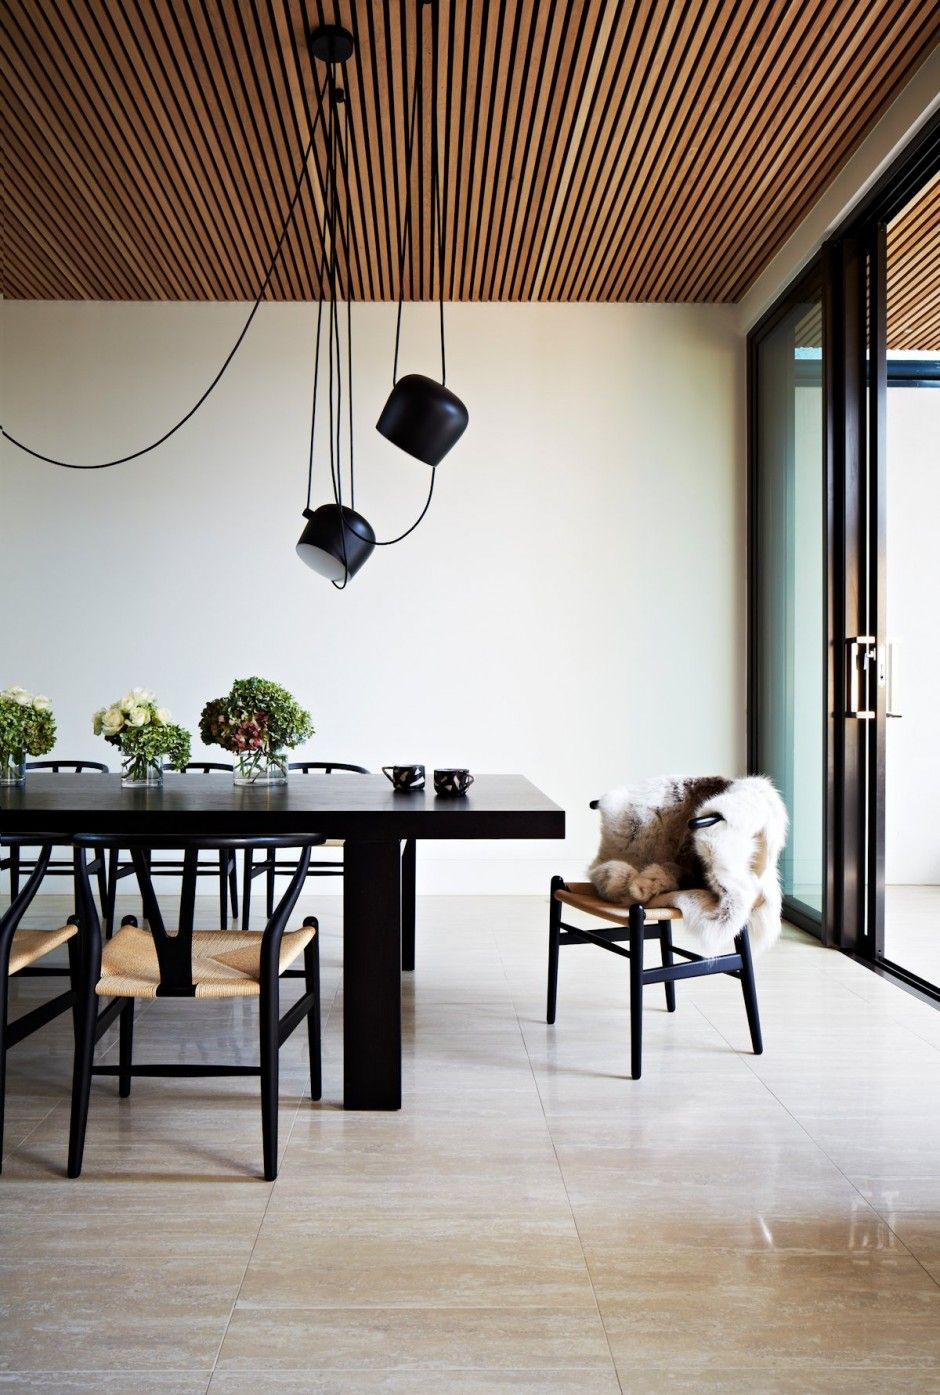 Australian architects workroom design collaborated with agushi builders to create oban house an urban house in south yarra near melbourne australia